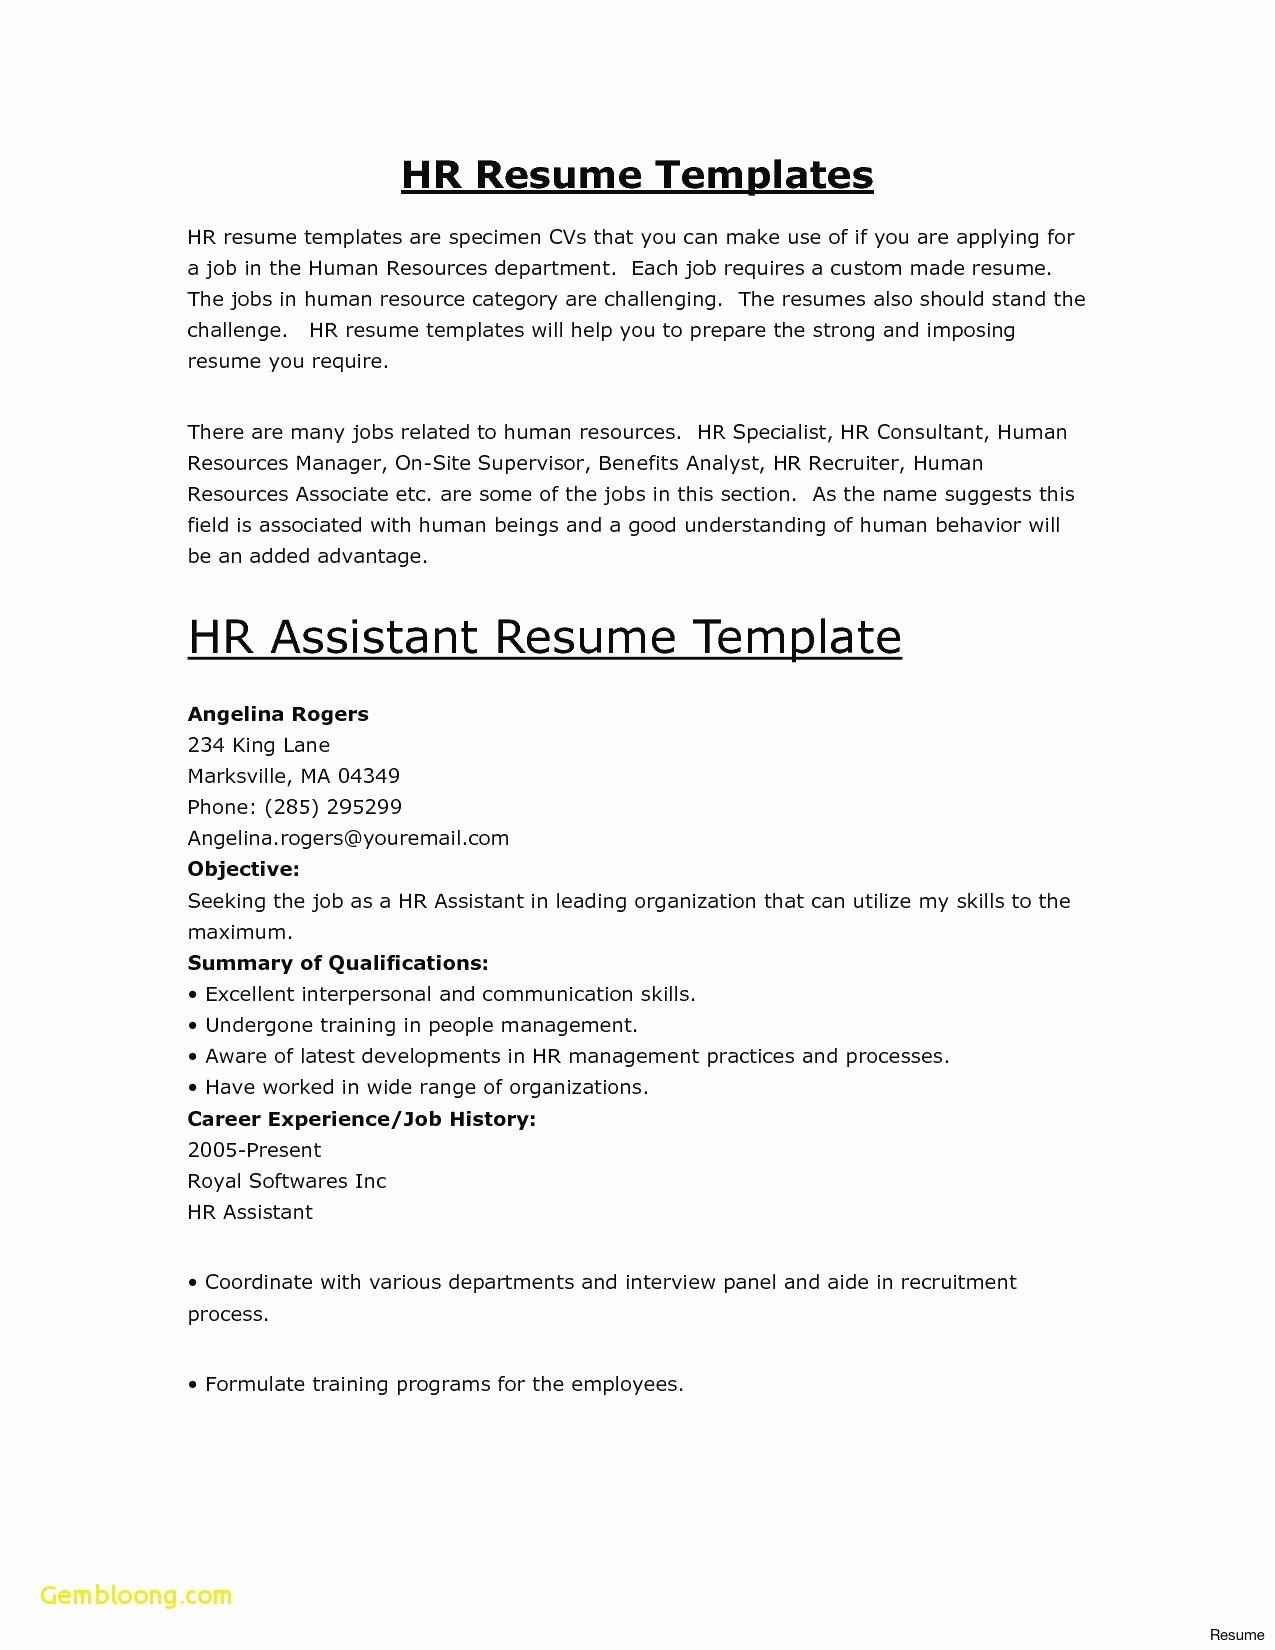 cover letter for job application template Collection-Free Template Cover Letter for Job Application Awesome Pr Resume Template Elegant Dictionary Template 0d 1-m